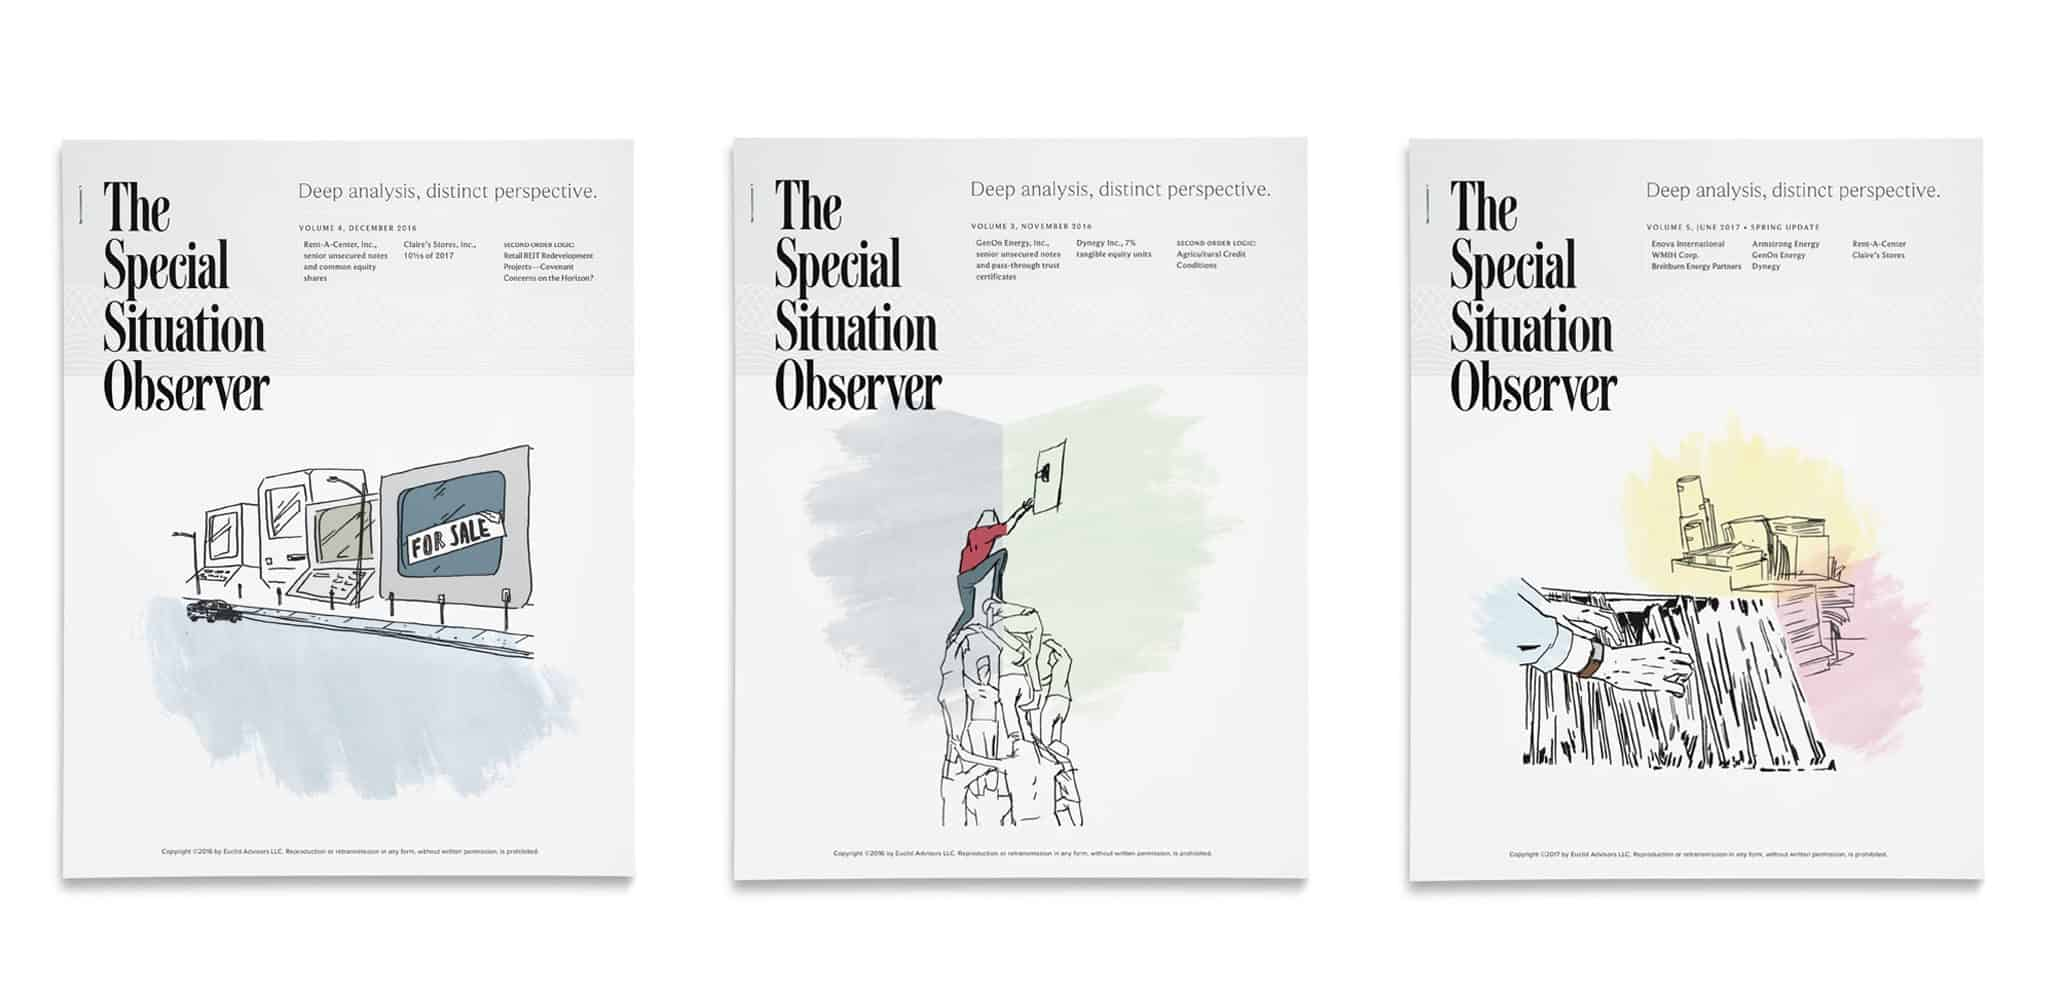 Publication cover design featuring illustrations by Rene Cruz for The Special Situation Observer | Designed by Field of Study: A branding and graphic design consultancy | Houston TX | Jennifer Blanco & John Earles